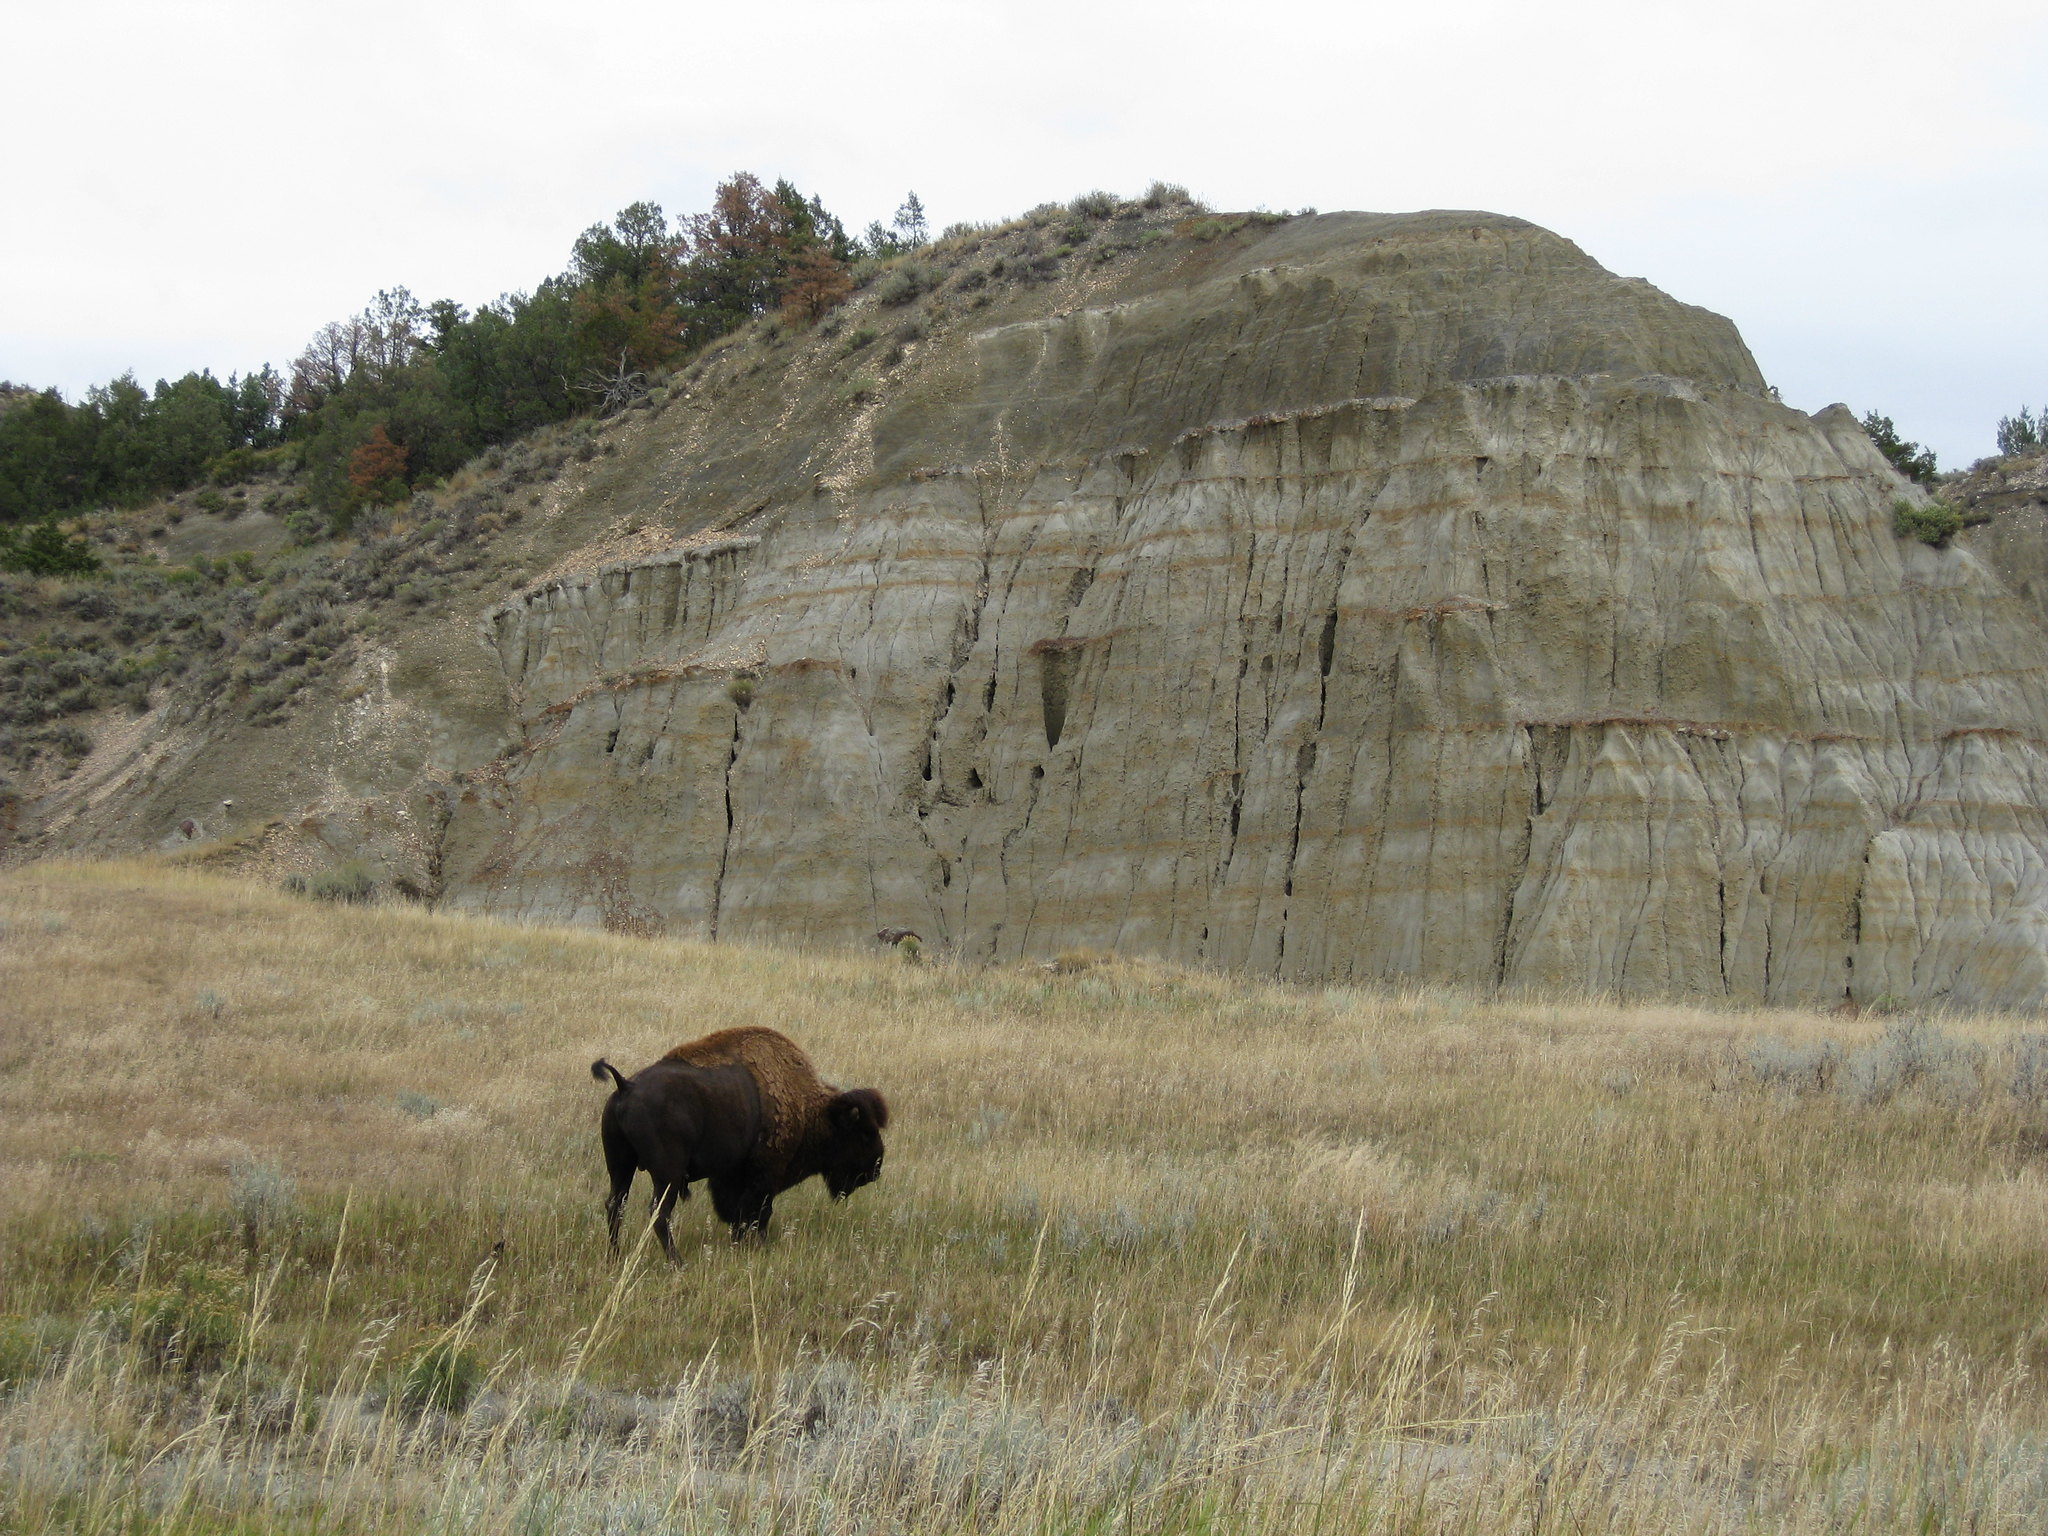 Buffalo at Theodore Roosevelt National Park south unit